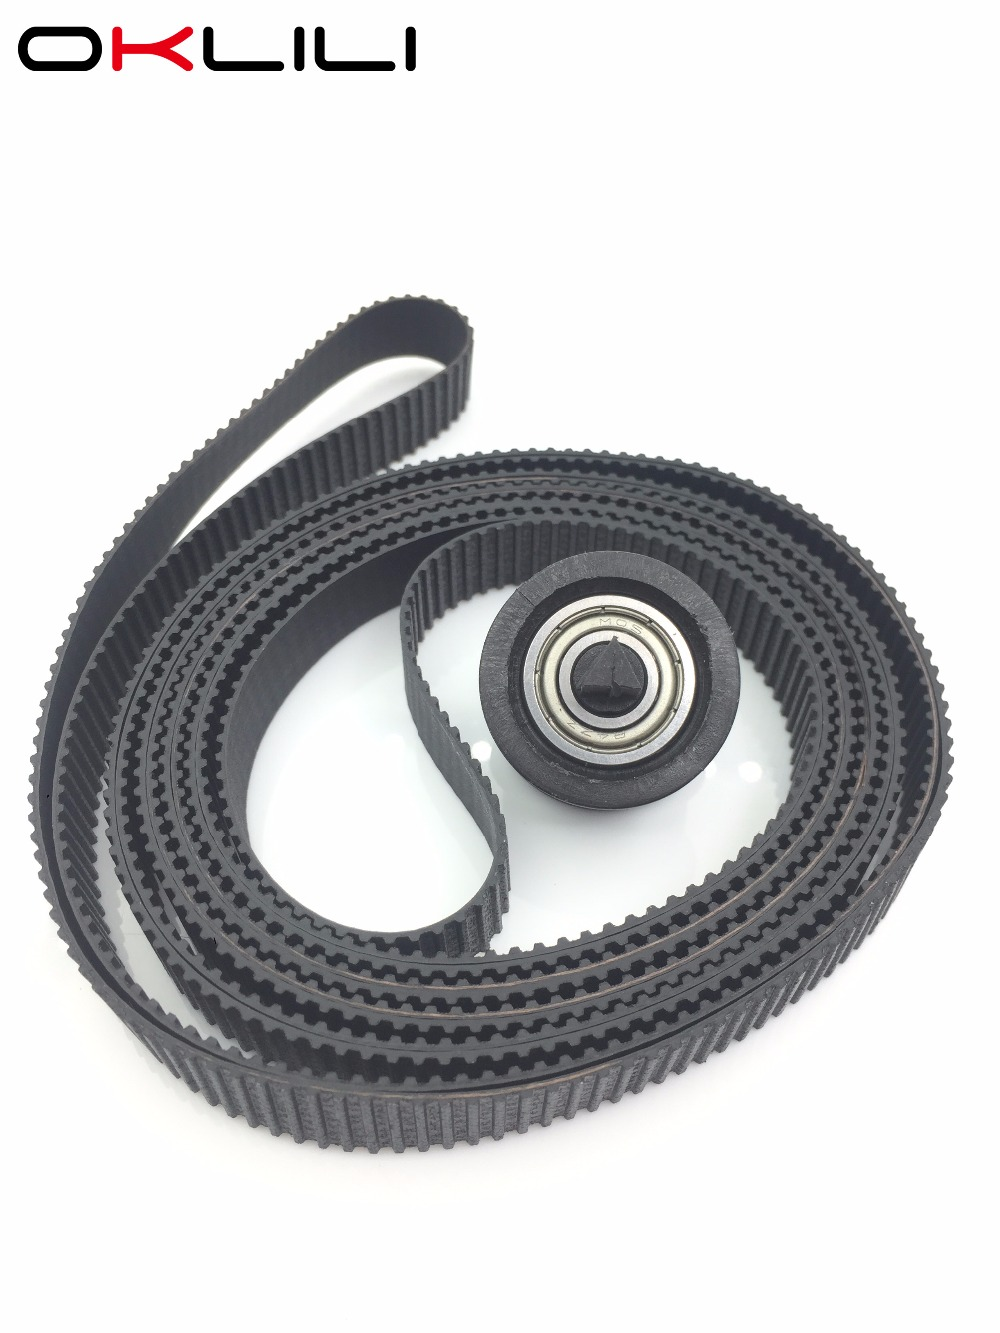 C7769-60182 Carriage Belt with Pulley 24 24 inch A1 for HP DesignJet 500 500PS 510 510PS 800 800PS Plus 4500 820 MFP 4020 T620C7769-60182 Carriage Belt with Pulley 24 24 inch A1 for HP DesignJet 500 500PS 510 510PS 800 800PS Plus 4500 820 MFP 4020 T620